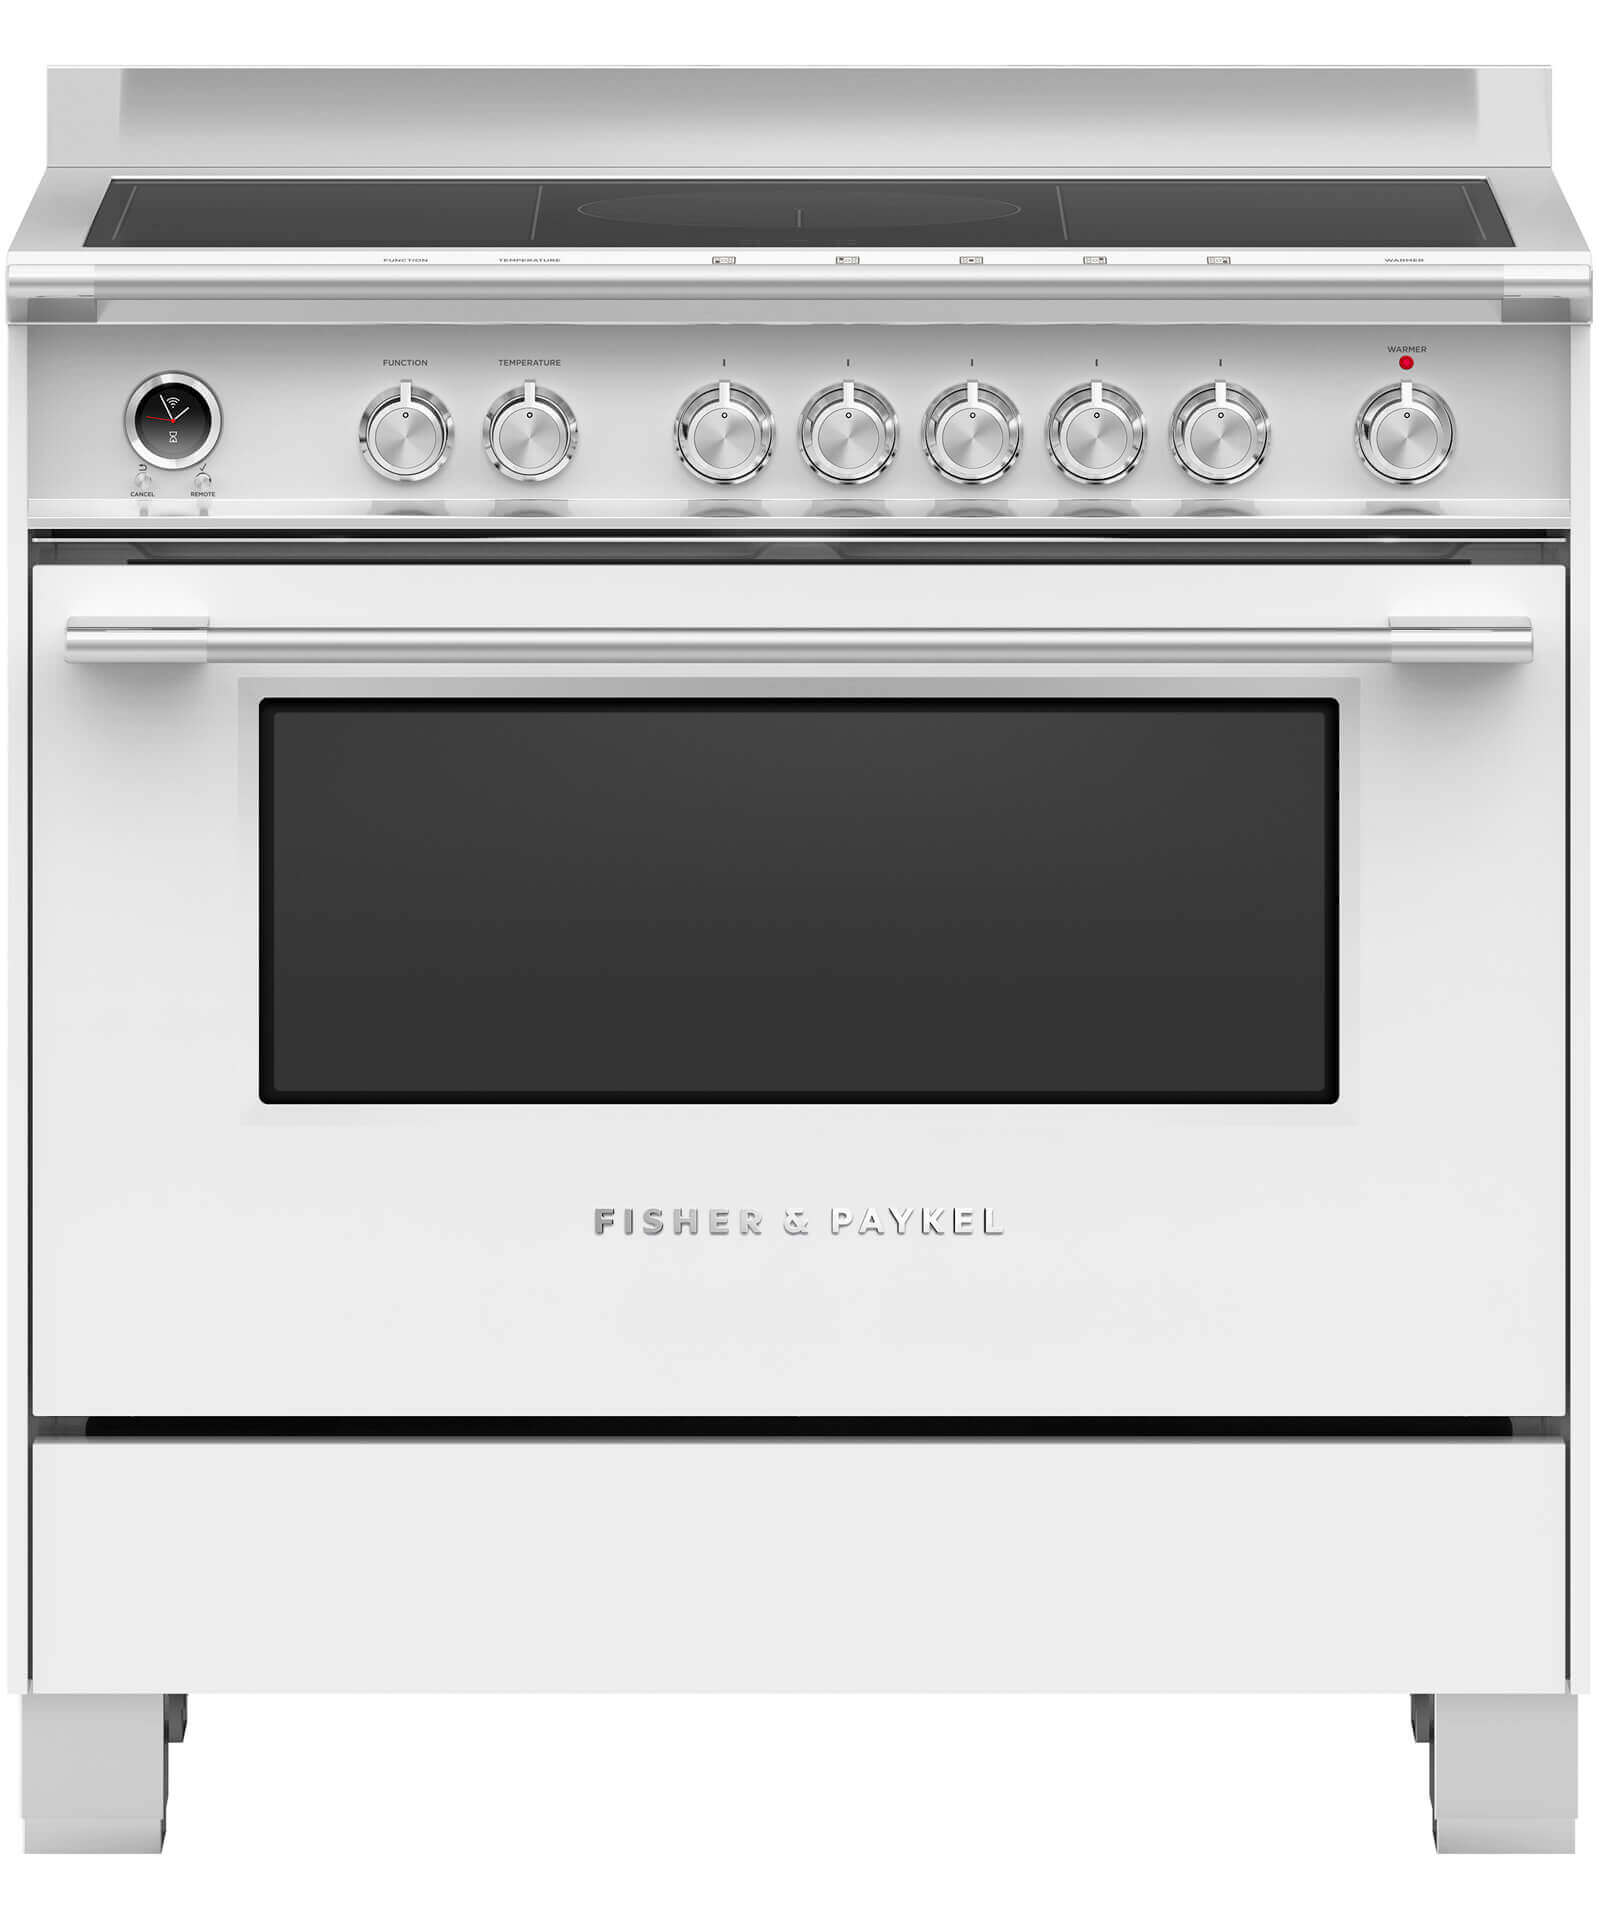 Classic Cuisine Induction Cooker Instructions Or90sci6w1 Freestanding Induction Cooker 90cm Fisher